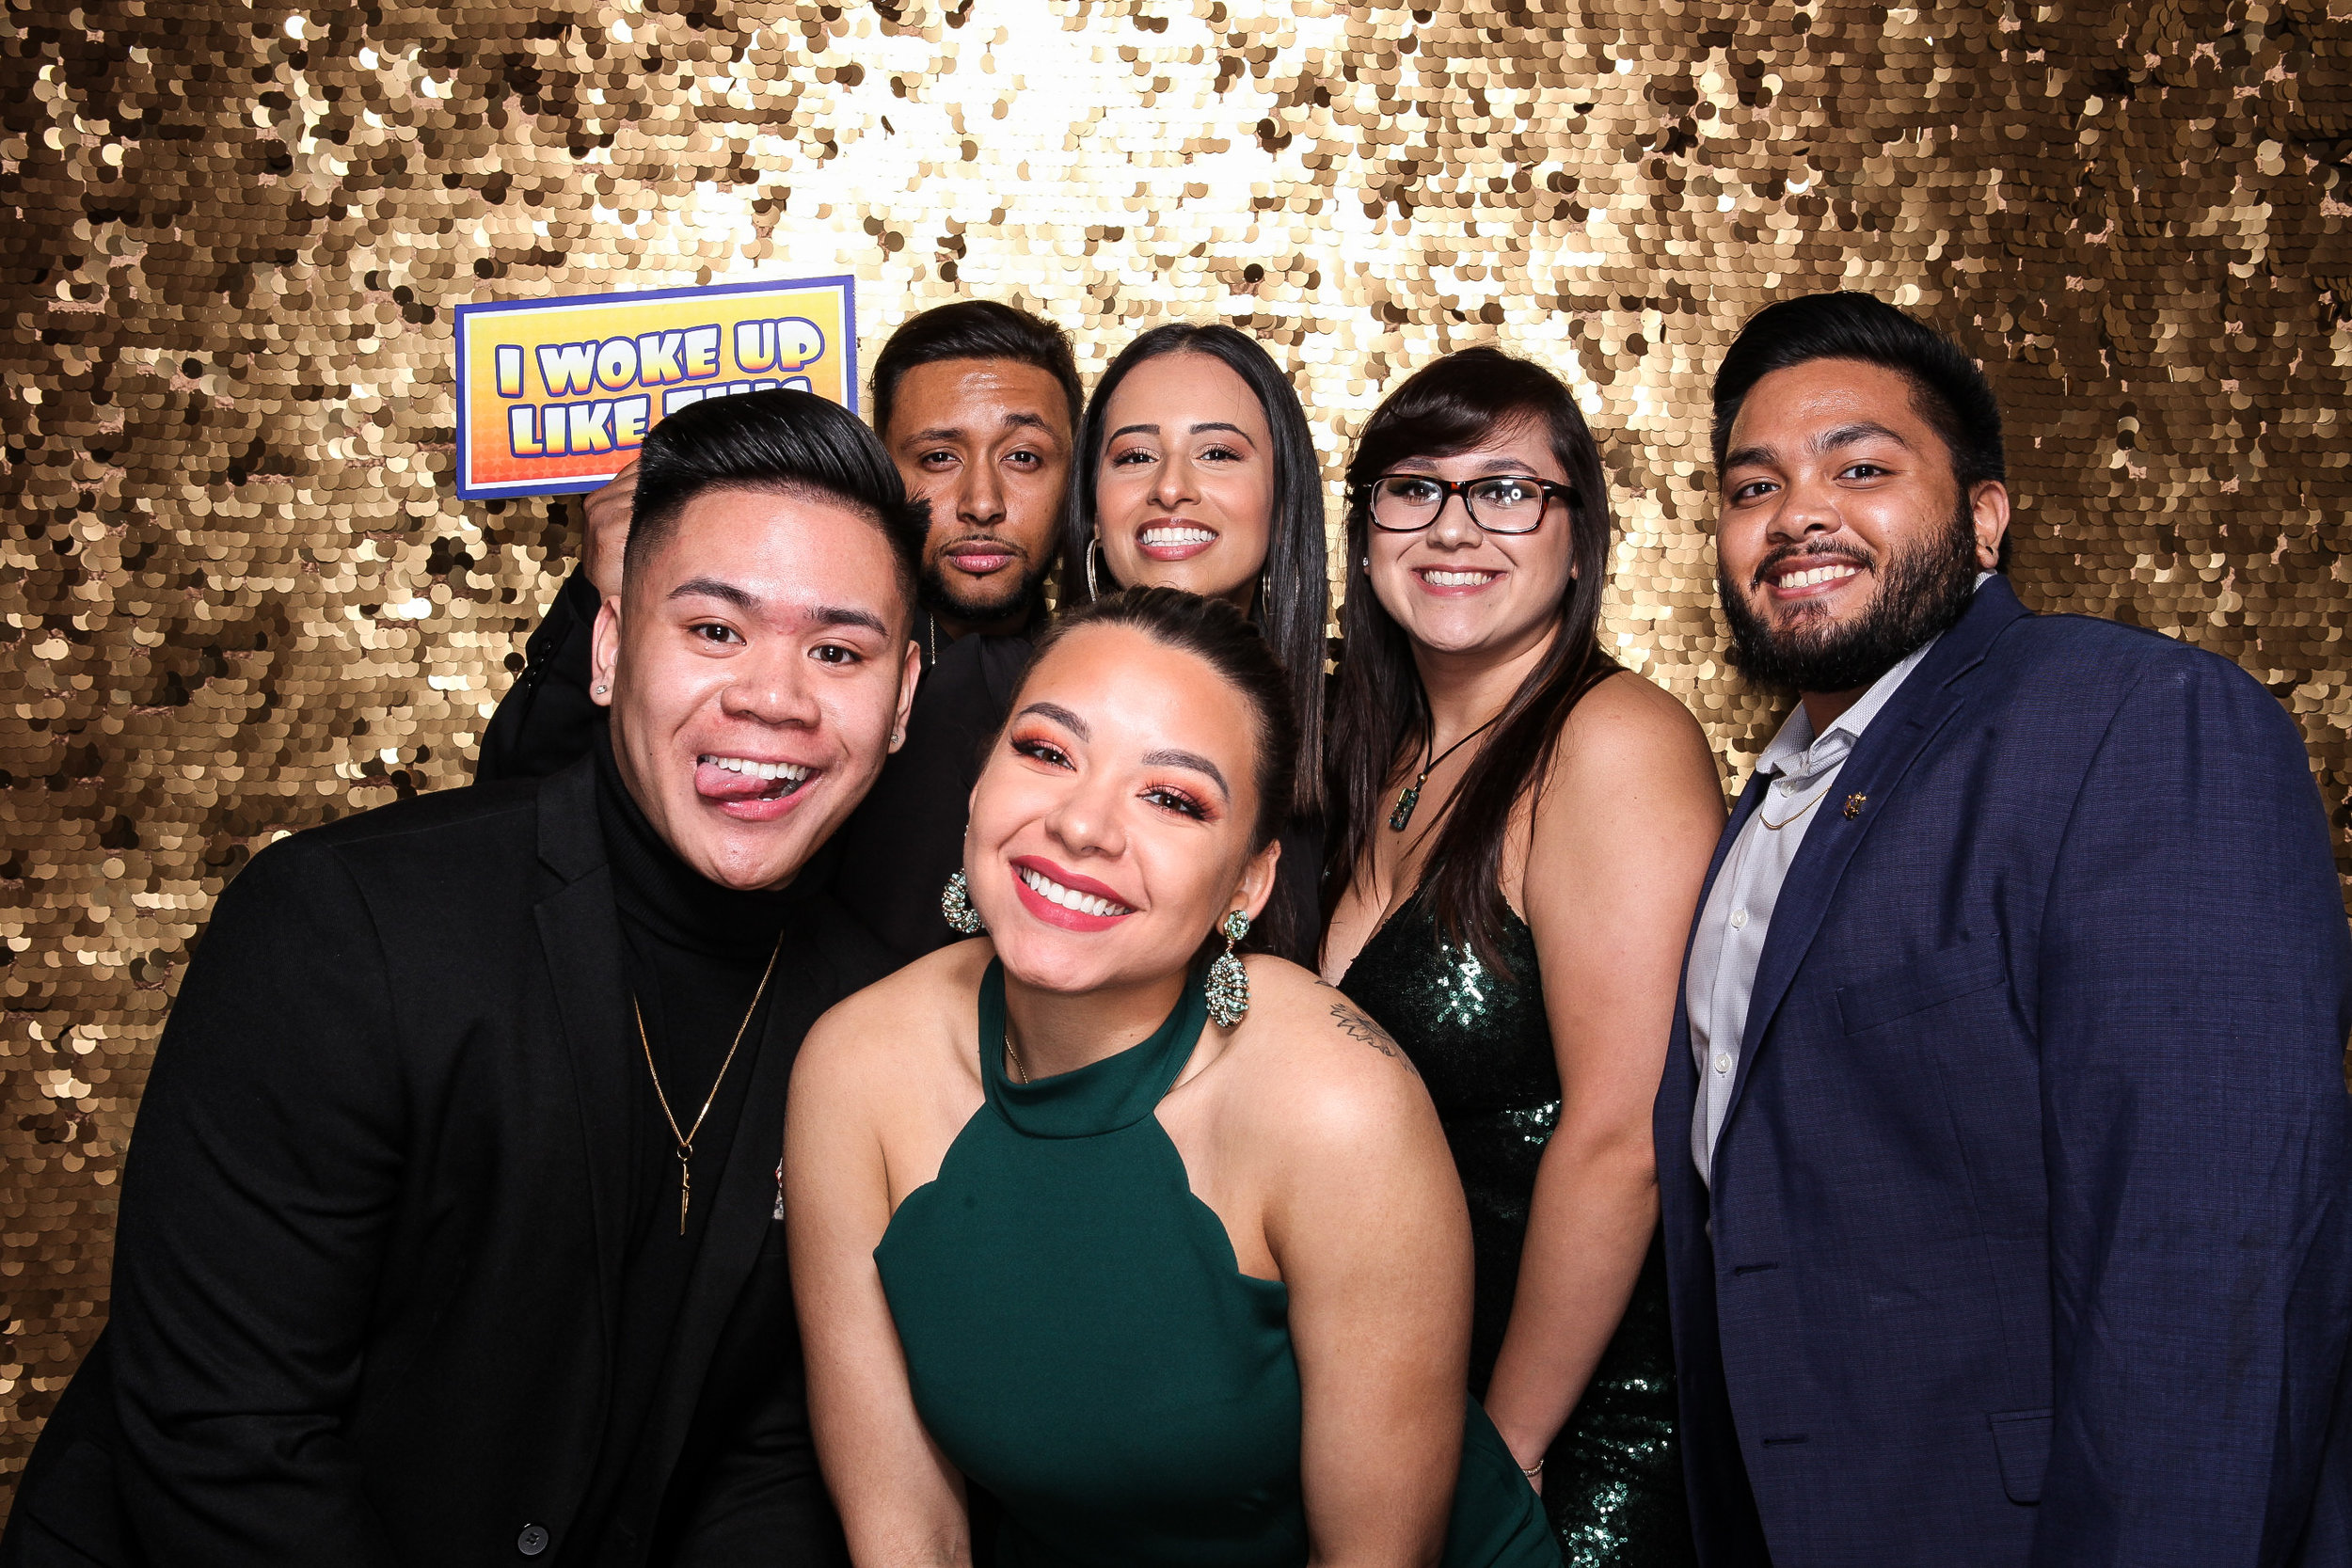 20190503_Adelphi_Senior_Formal-150.jpg